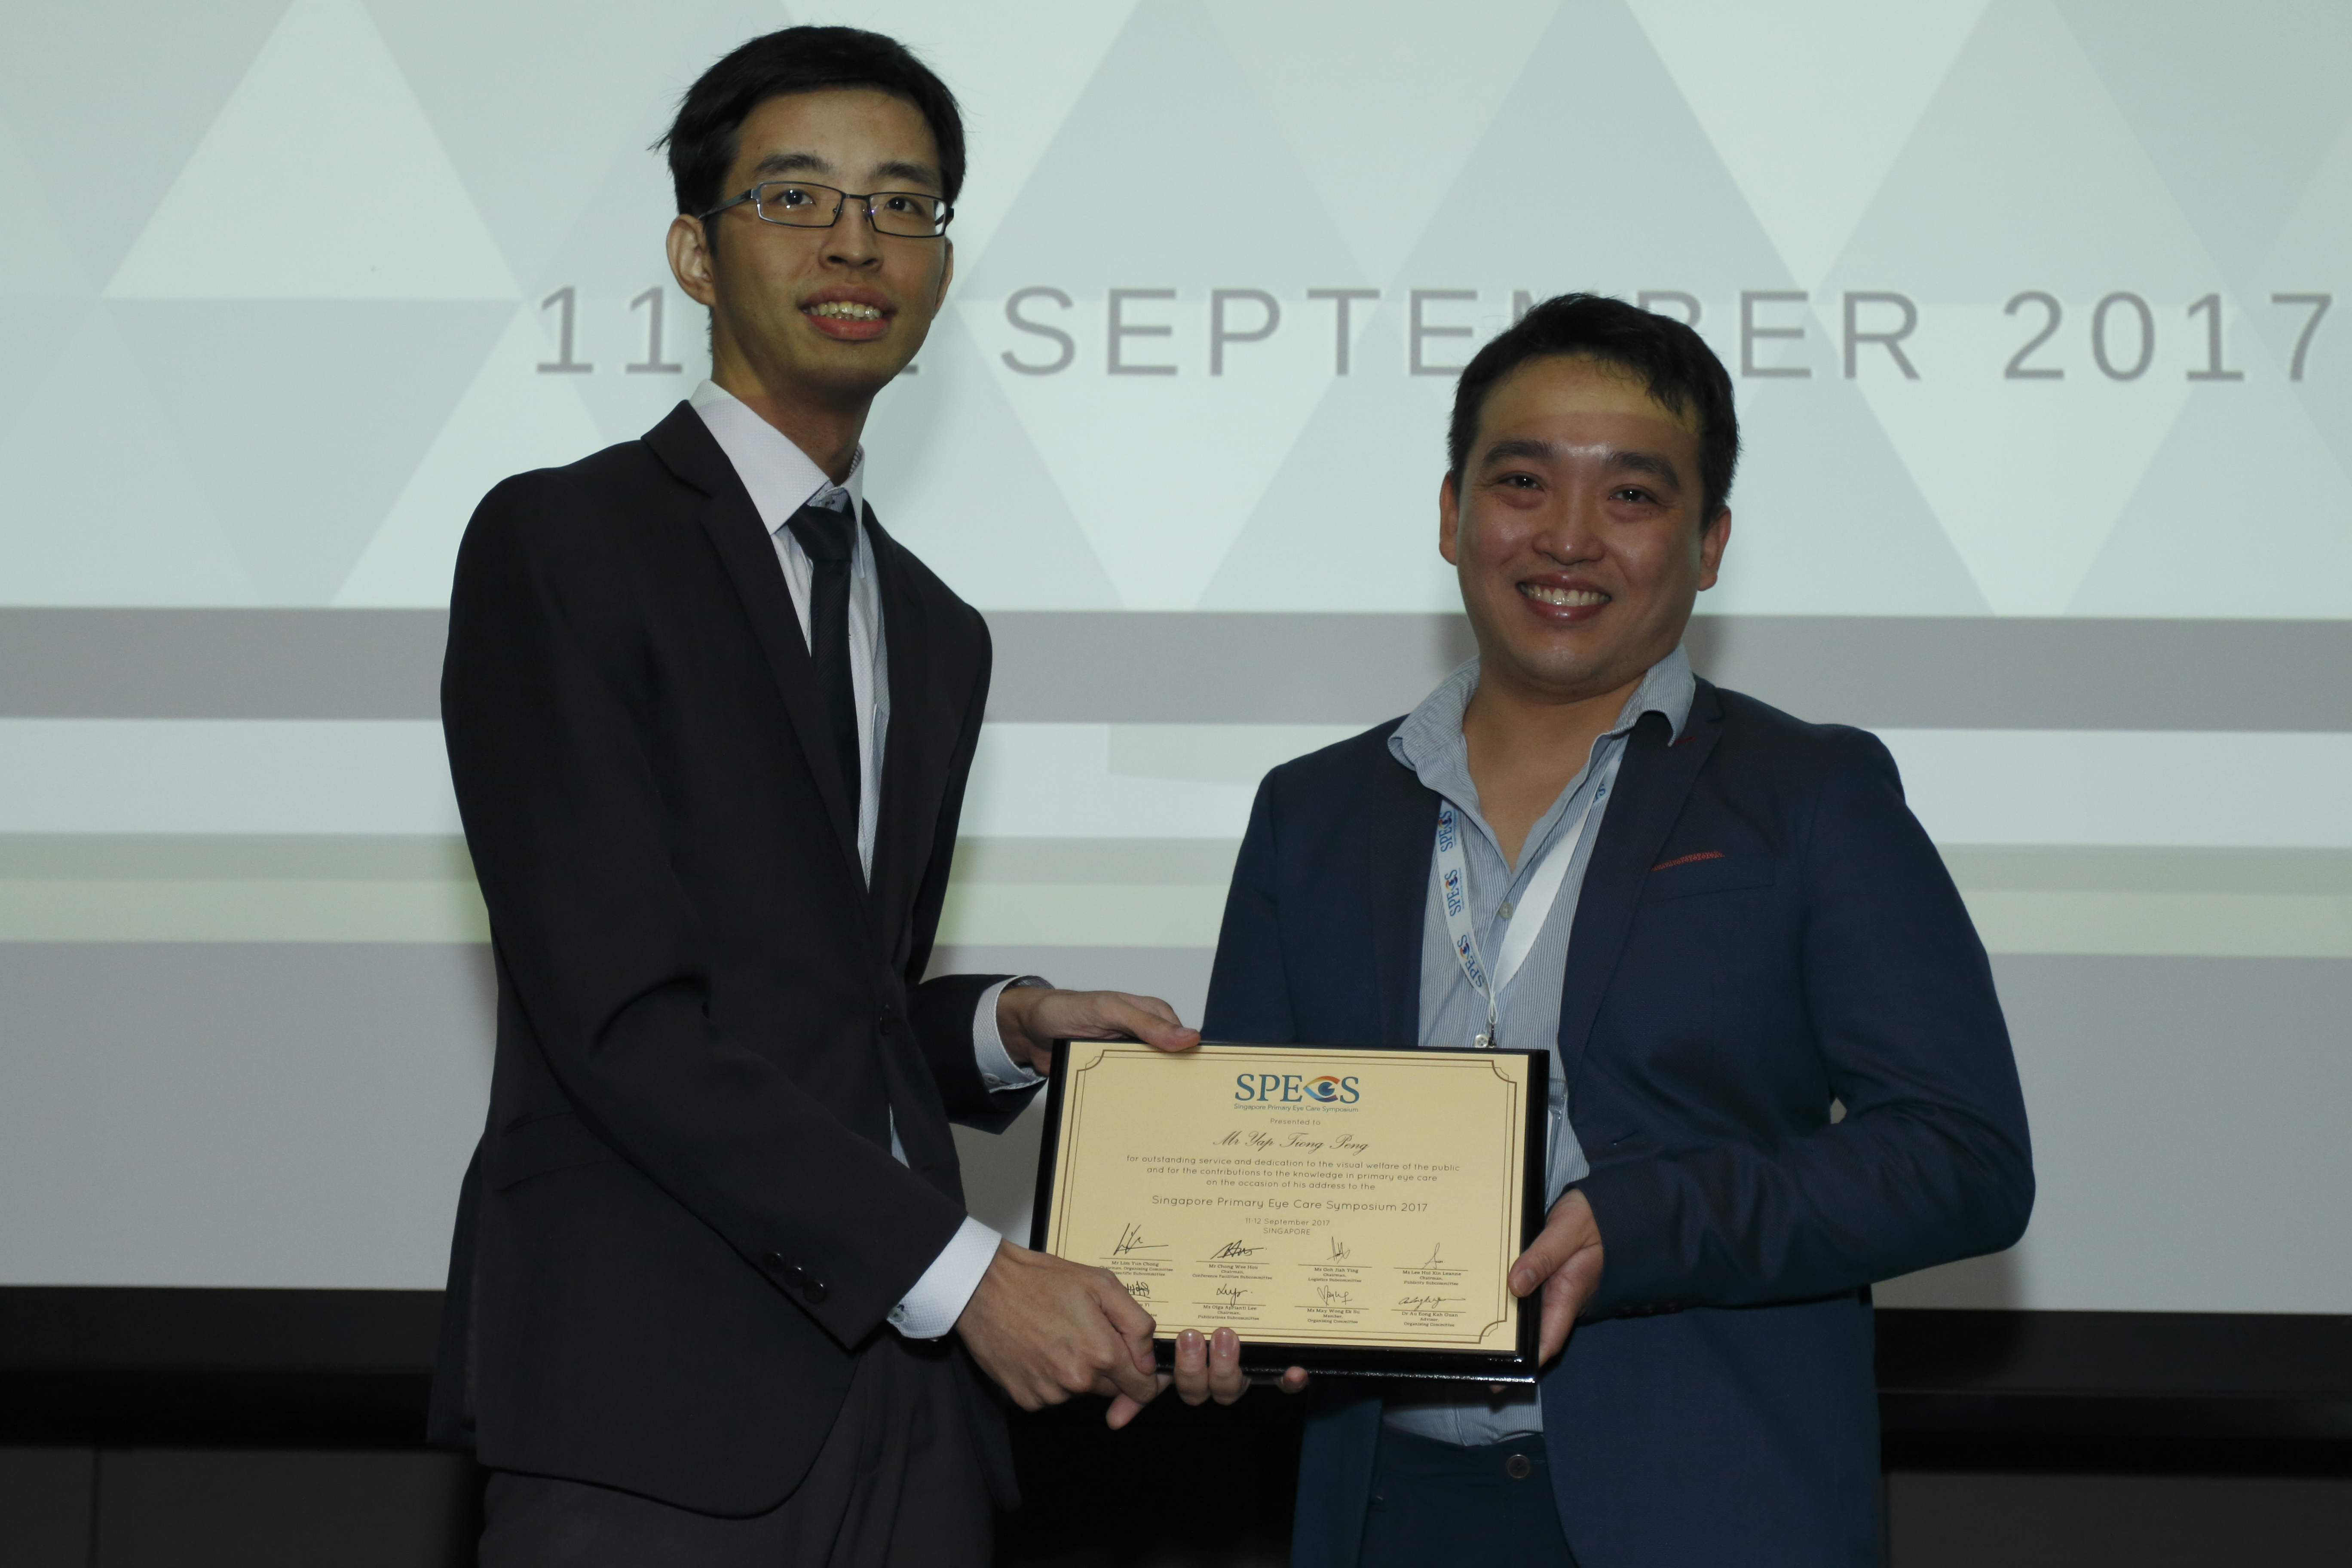 Mr Yap Tiong Peng (right), receiving a token of appreciation from Lim Yun Chong, chairman of the organising committee for Singapore Primary Eye Care Symposium 2017.